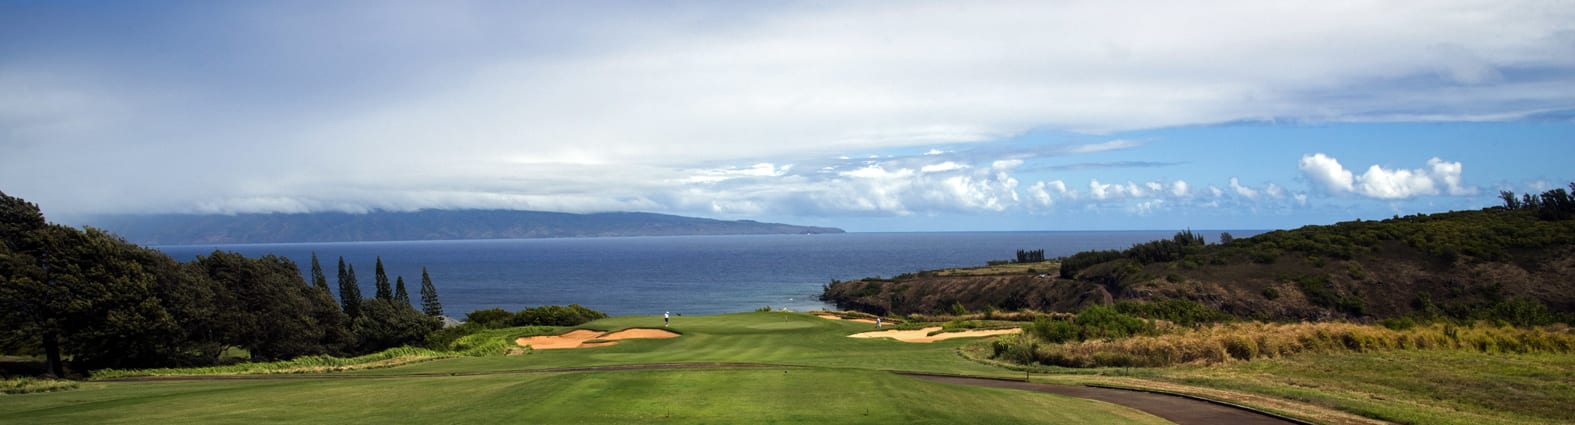 Golf on Maui Hawaii - 2250